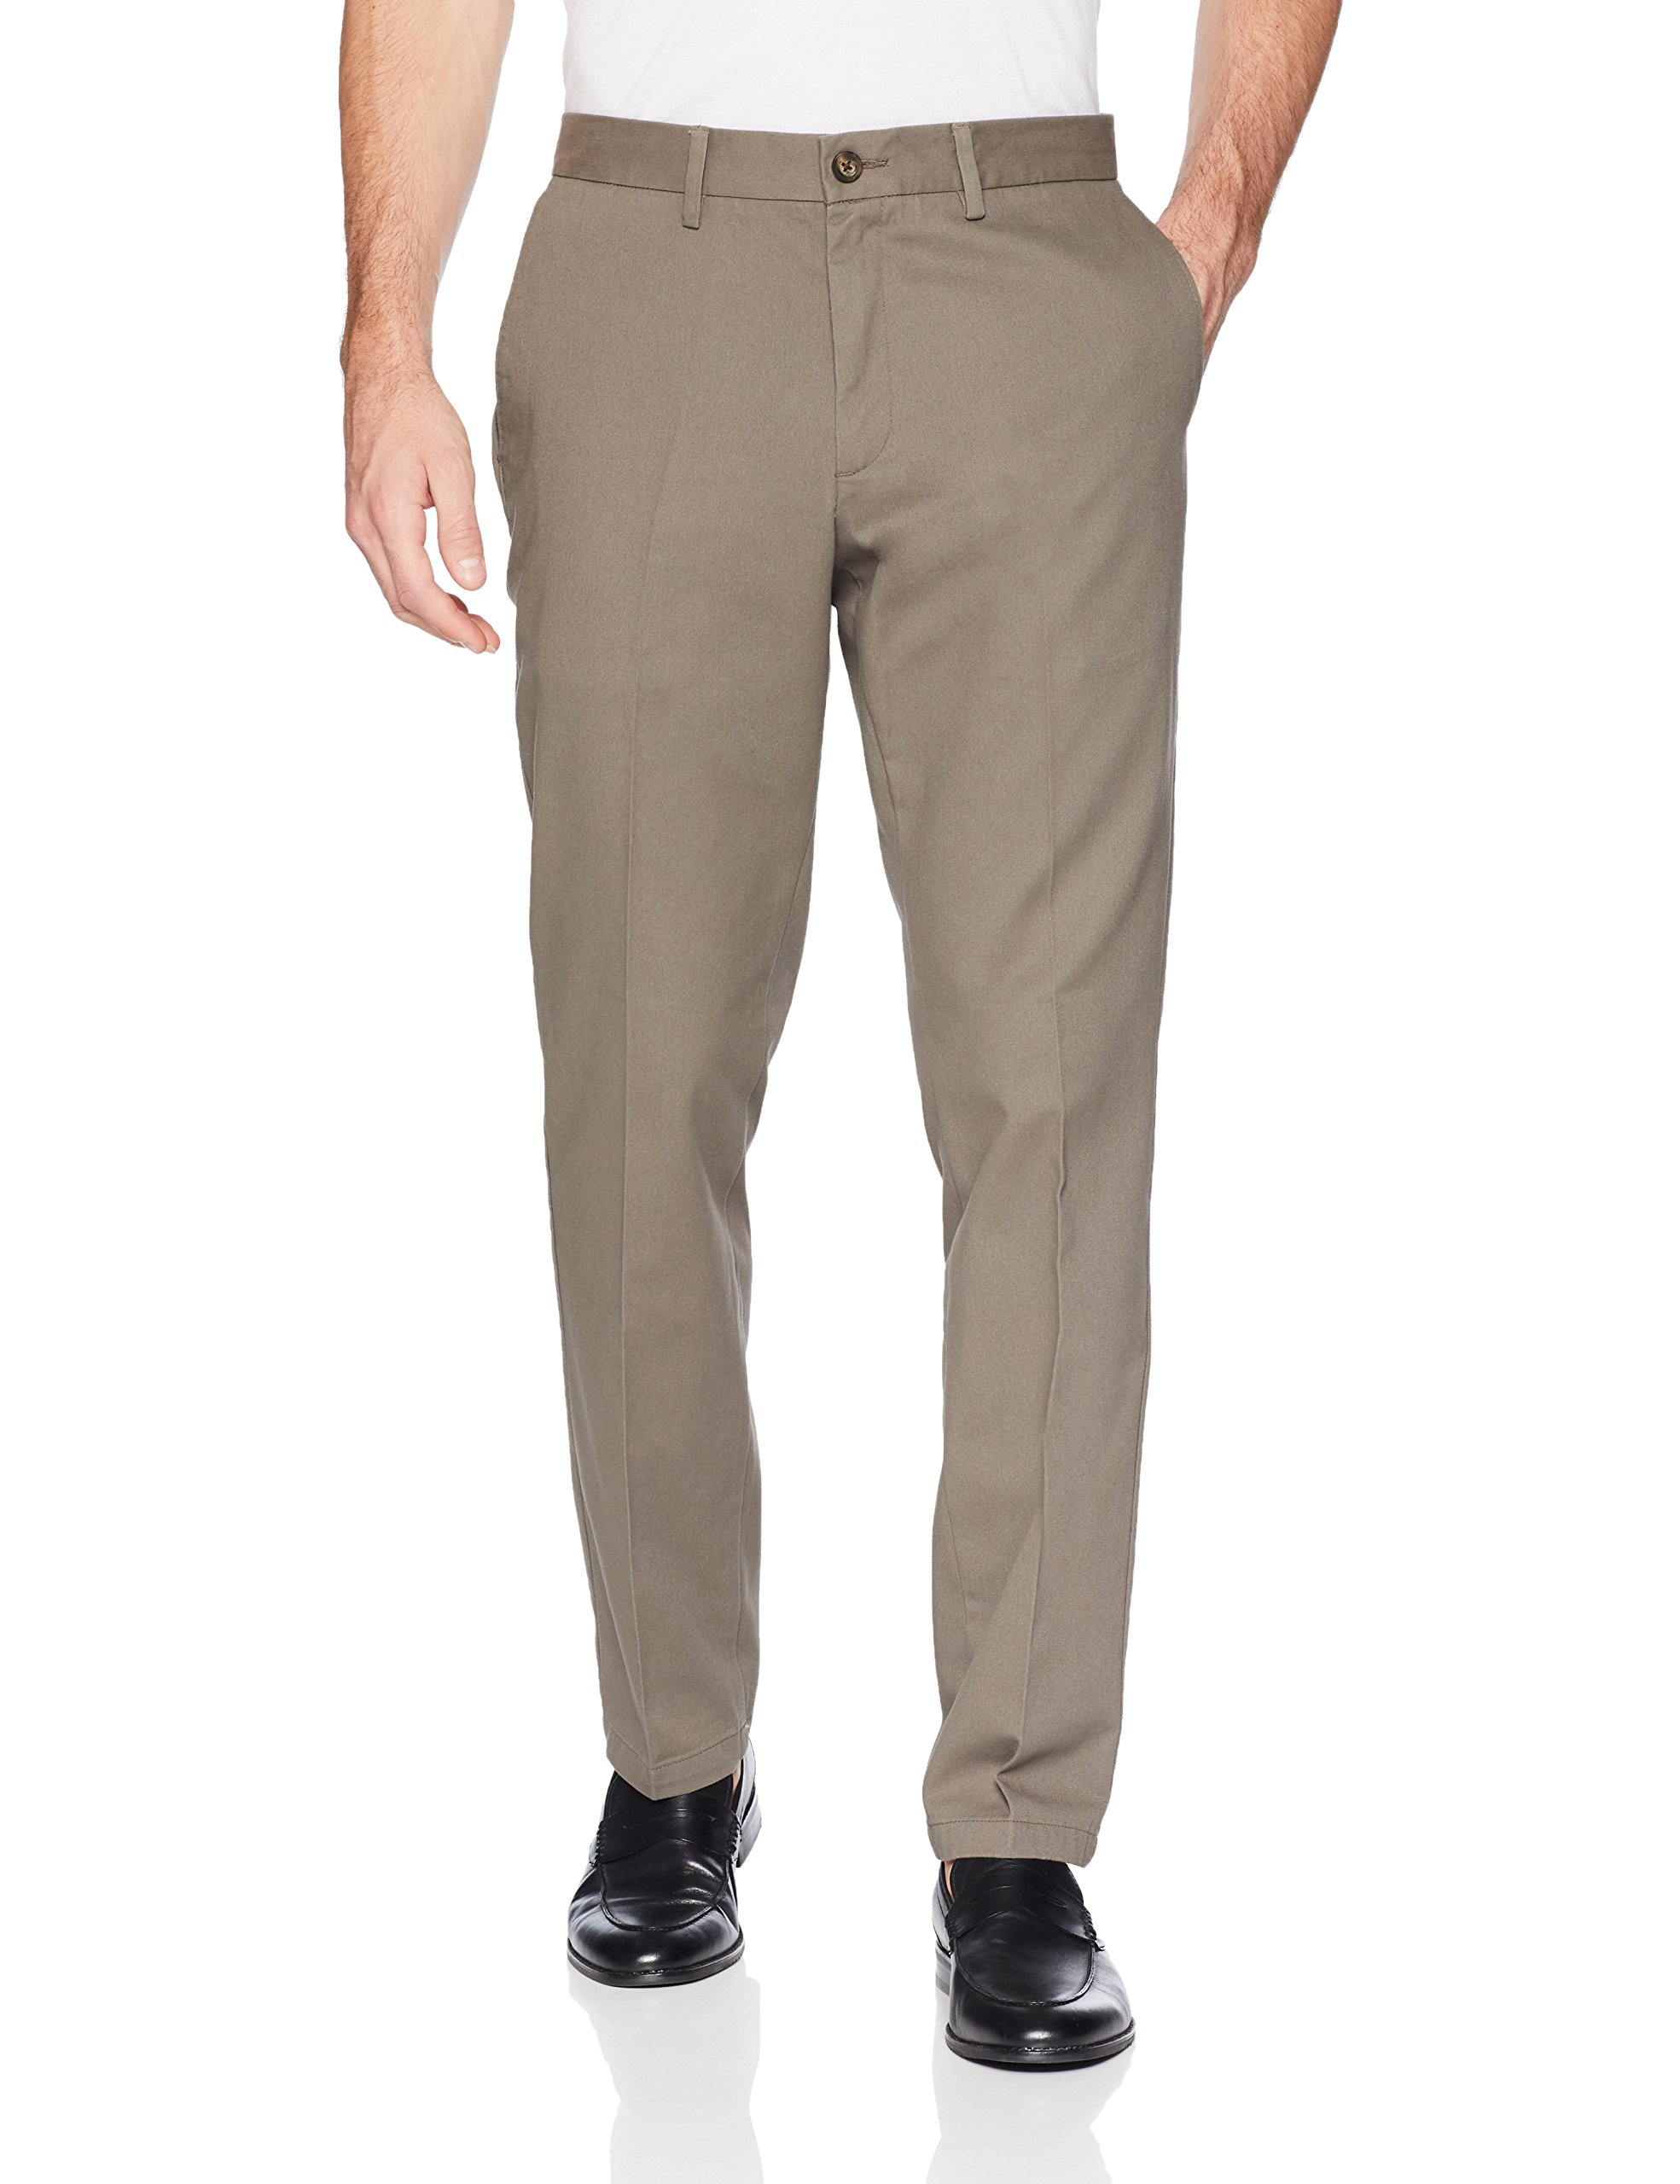 Amazon Essentials Men's Slim-Fit Wrinkle-Resistant Flat-Front Chino Pant, Taupe, 32W x 32L by Amazon Essentials